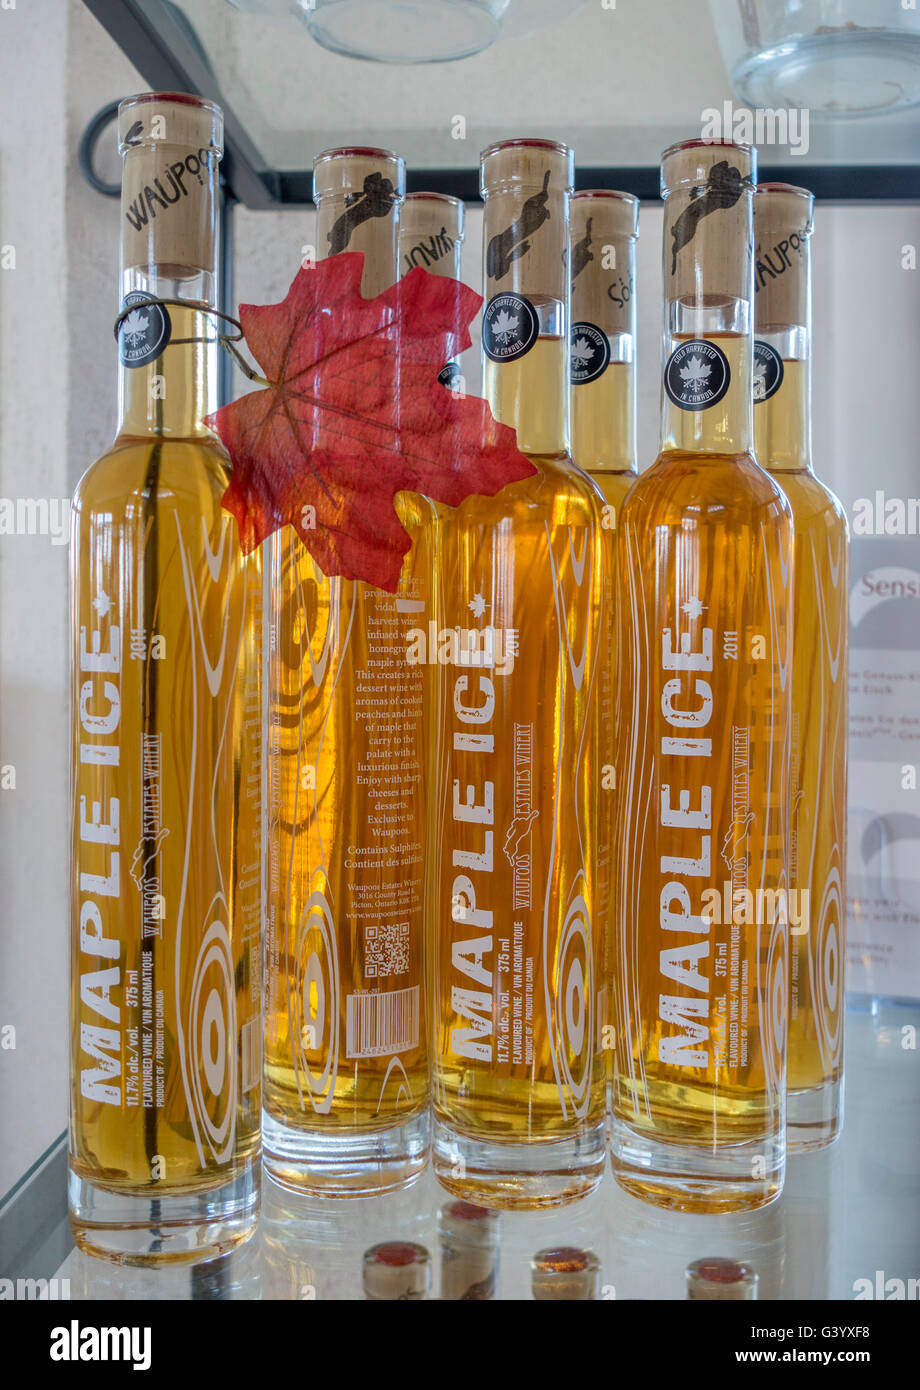 Waupoos Winery Maple Ice Wine Bottles For Sale On A Shelf, Waupoos Winery Is In Prince Edward County Ontario Canada - Stock Image